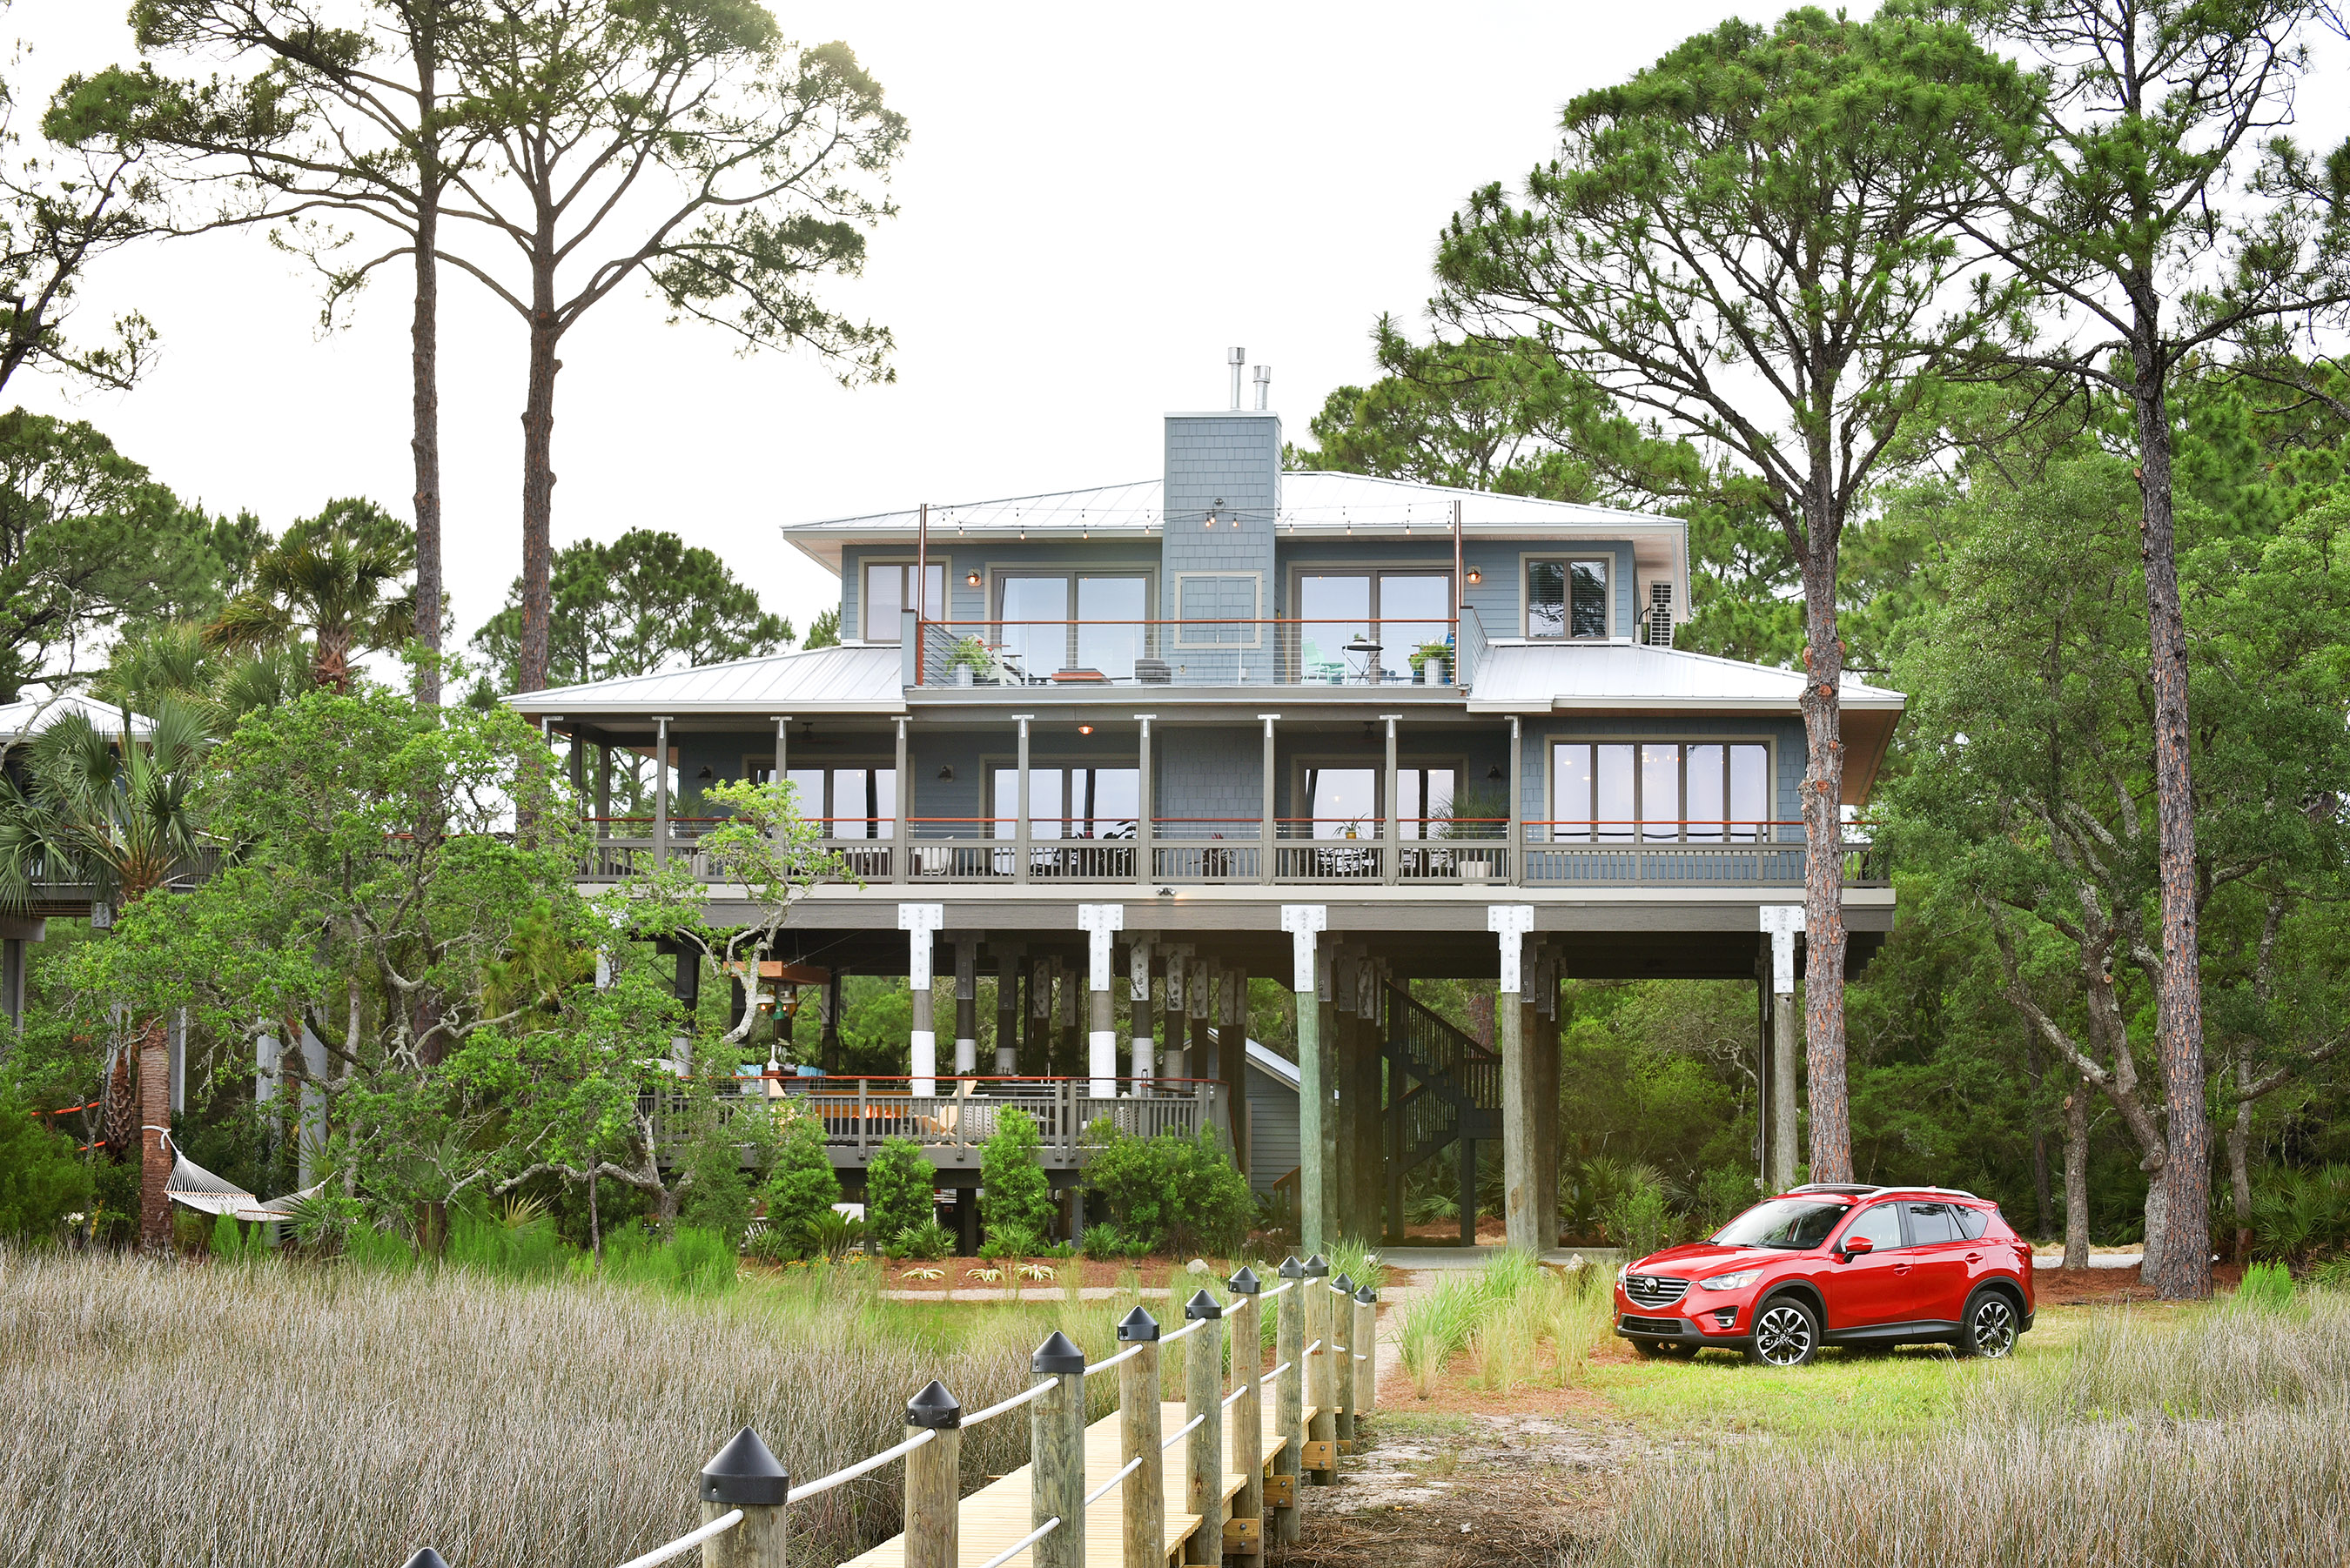 The 10th anniversary of the DIY Network Blog Cabin 2016 is a show-stopping remodel of a spacious waterfront home in Panacea, Florida. The grand prize giveaway includes the fully furnished home, $50,000 provided by national mortgage lender Quicken Loans® and a 2016 Mazda CX-5.